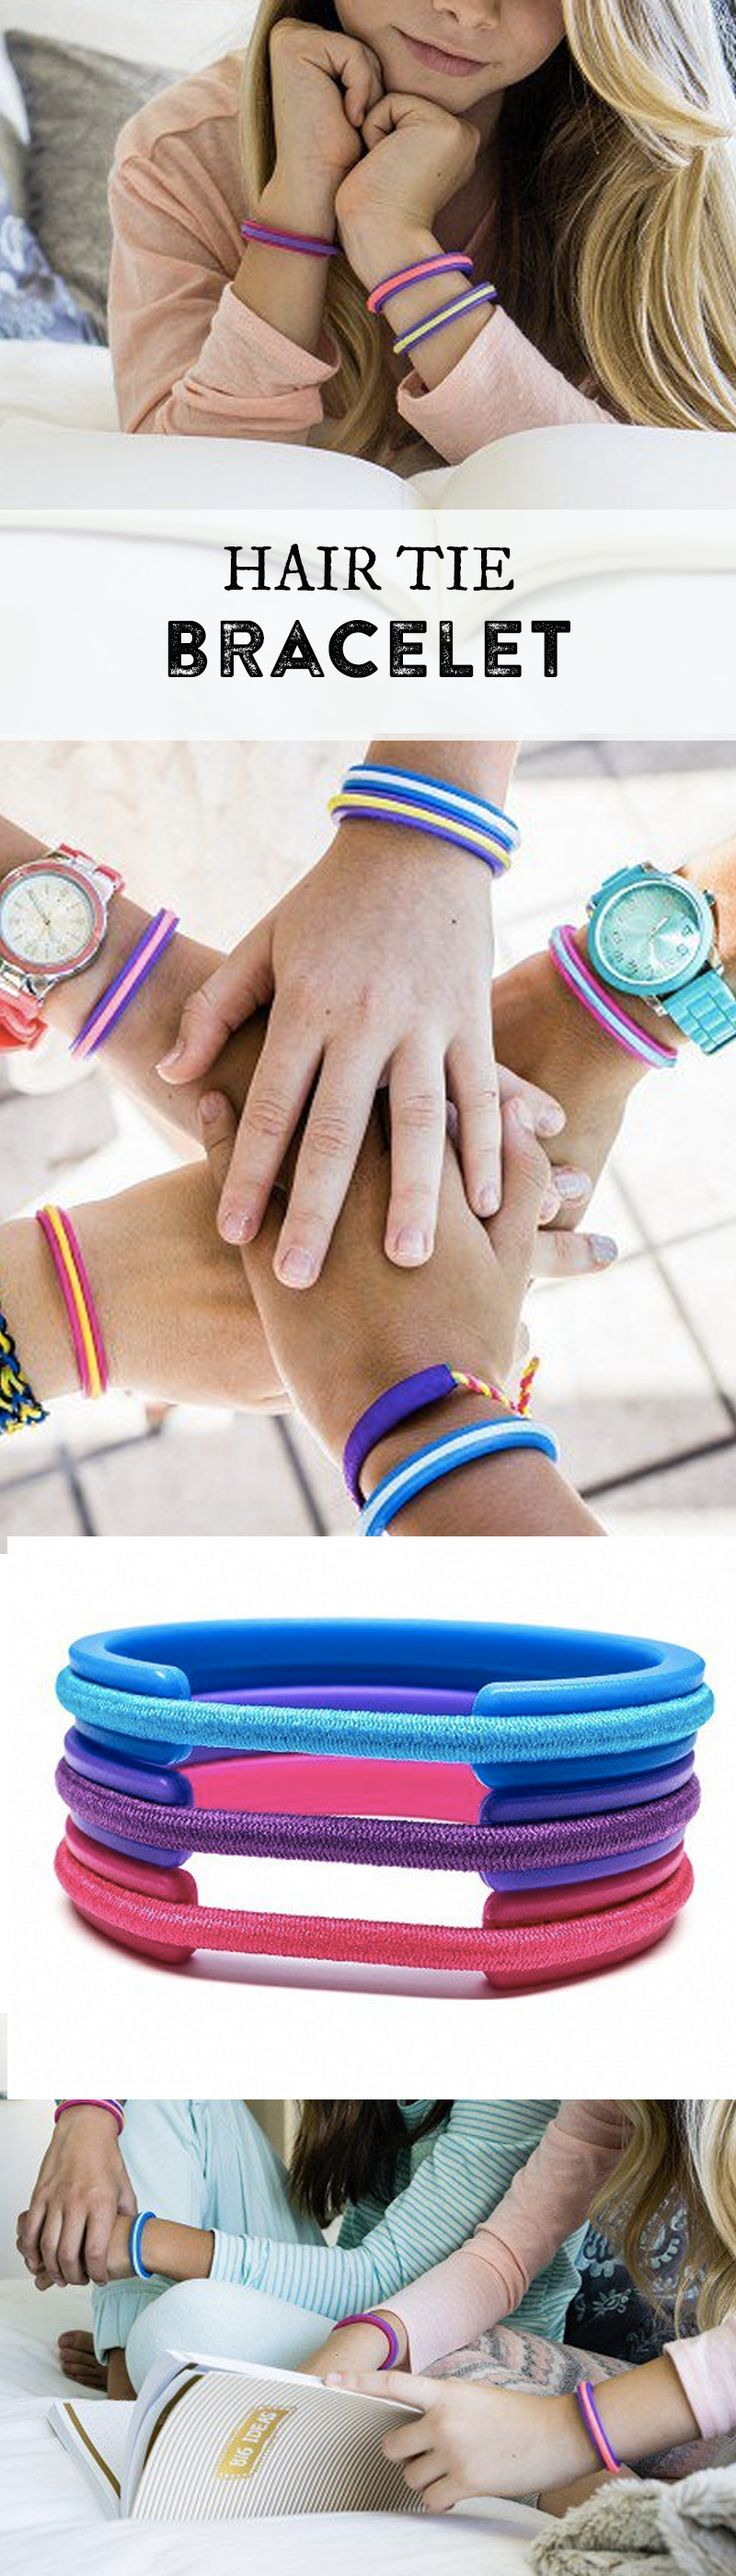 Give your kids a better way to carry their hair elastics that's fun AND keeps their wrists indent-free.